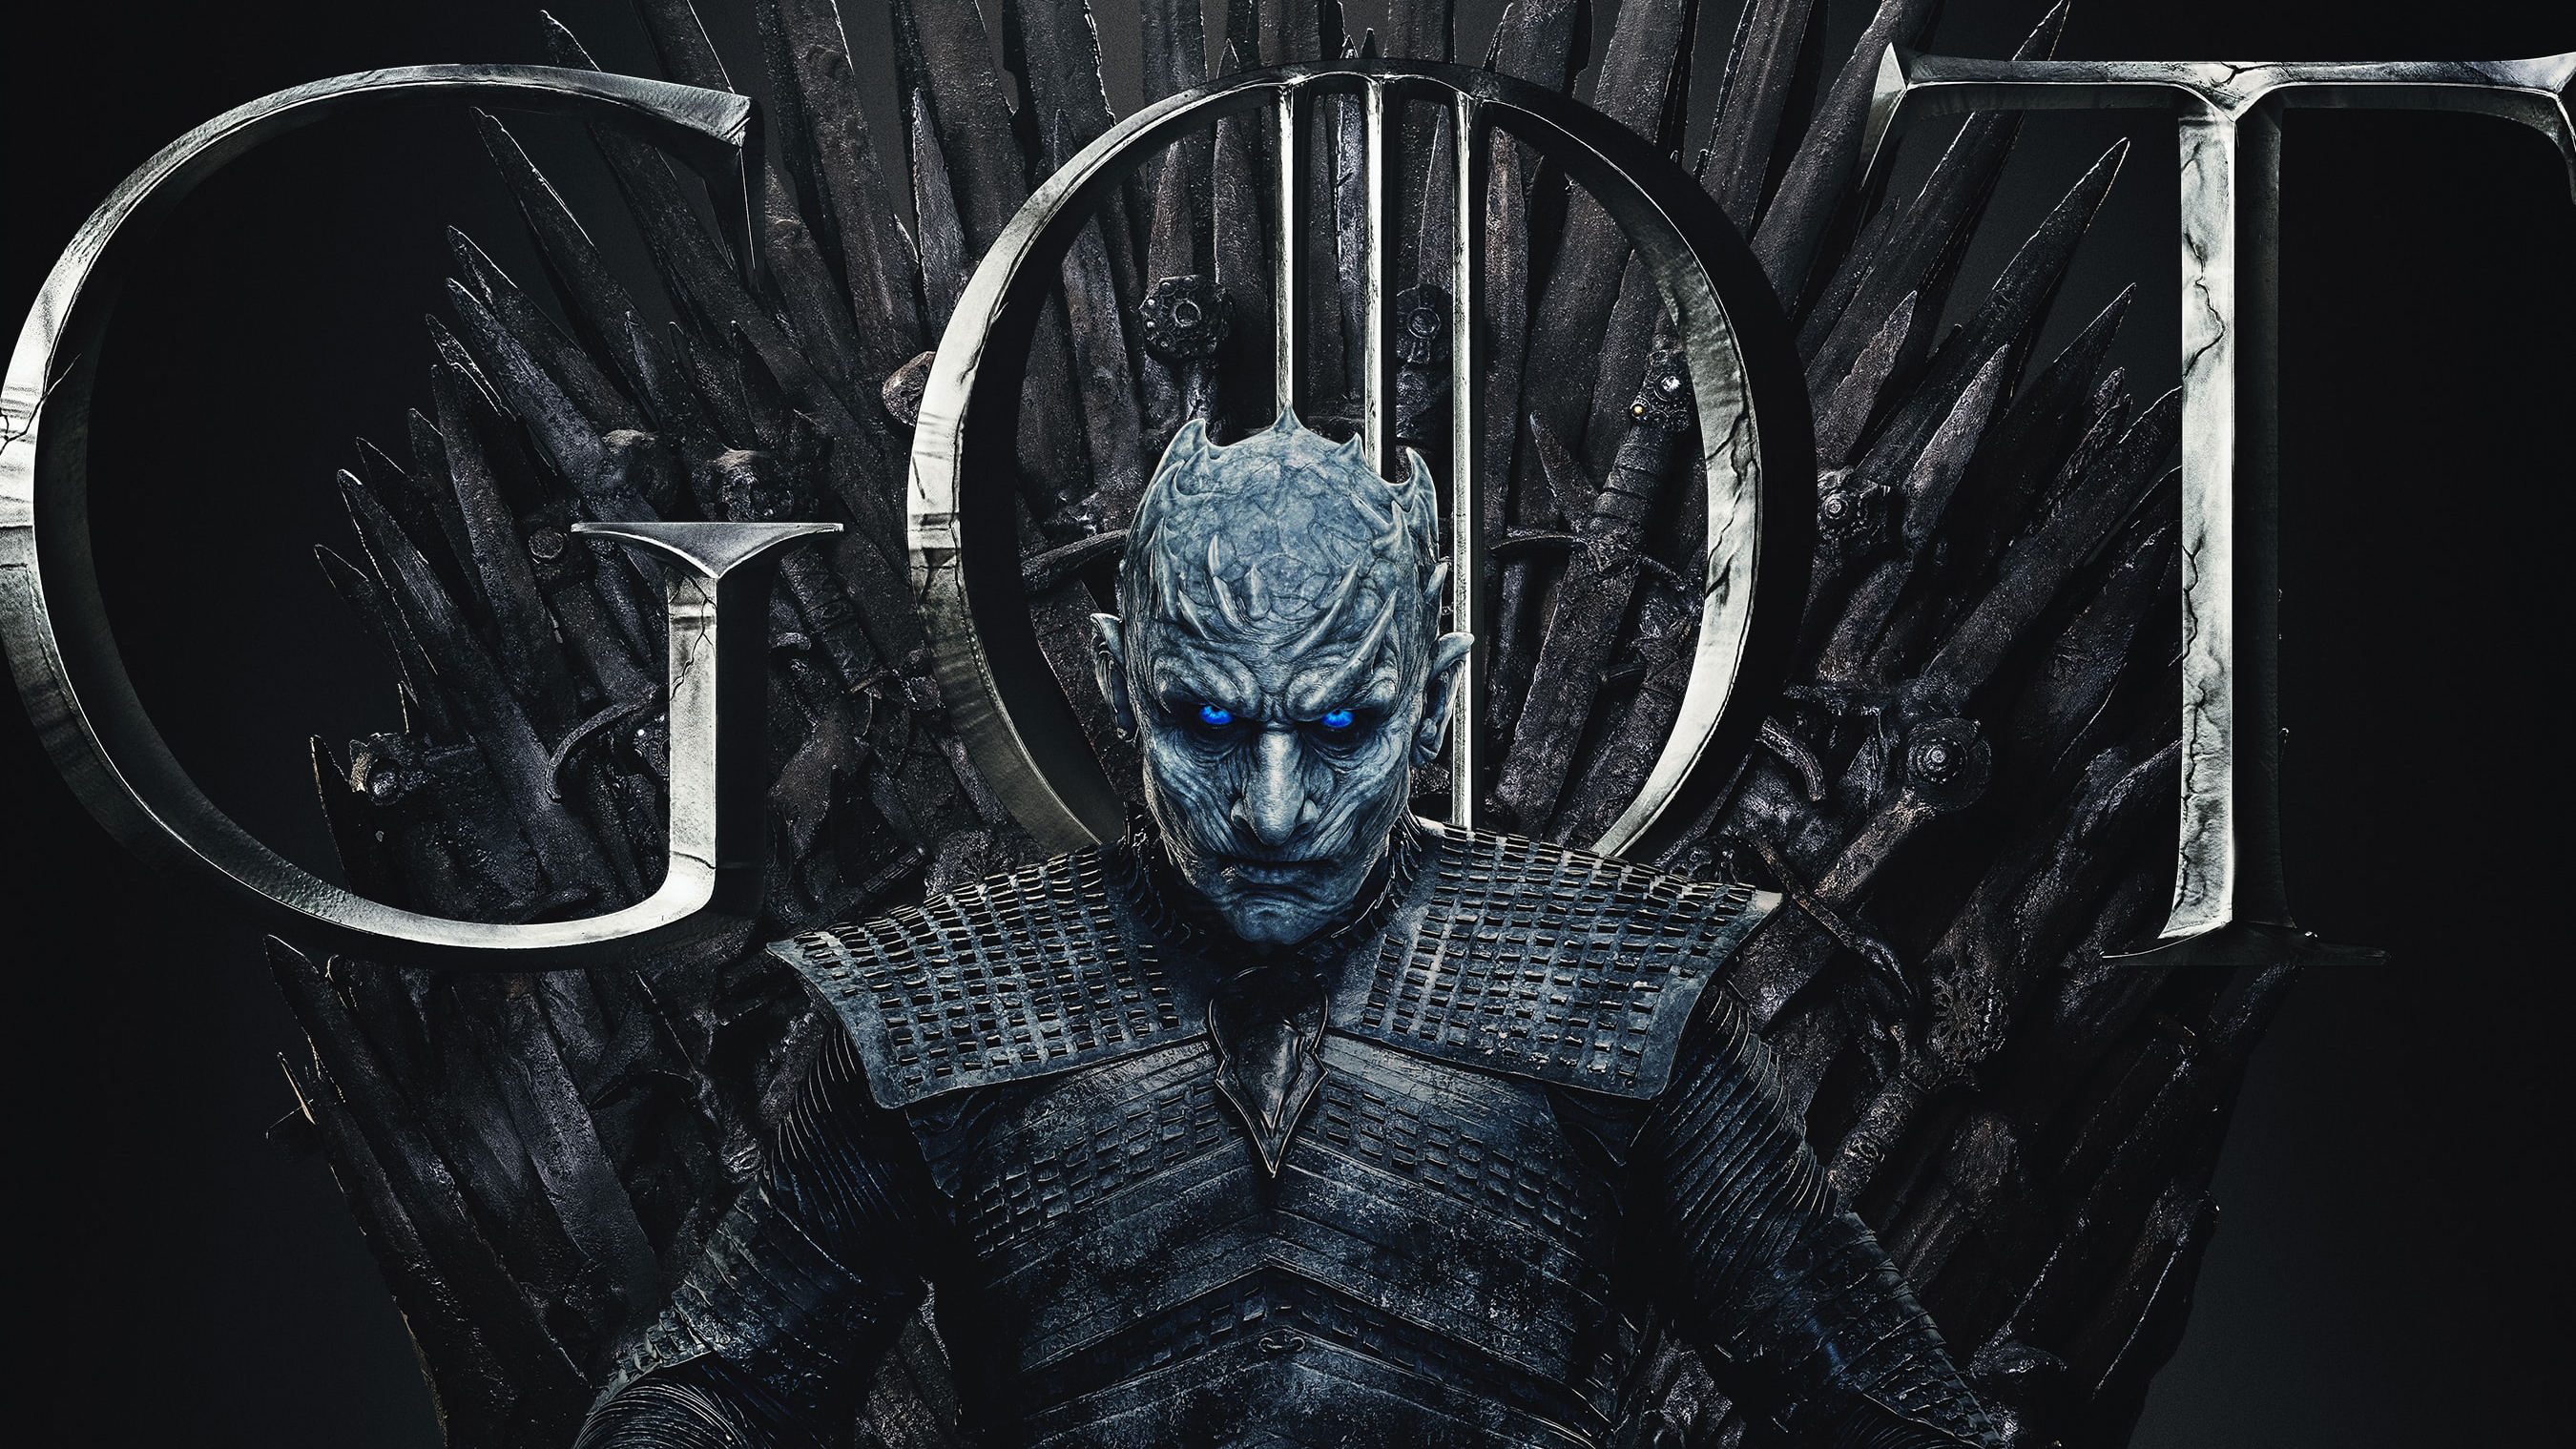 Night King Game Of Thrones Season 8 Poster Hd Tv Shows 4k